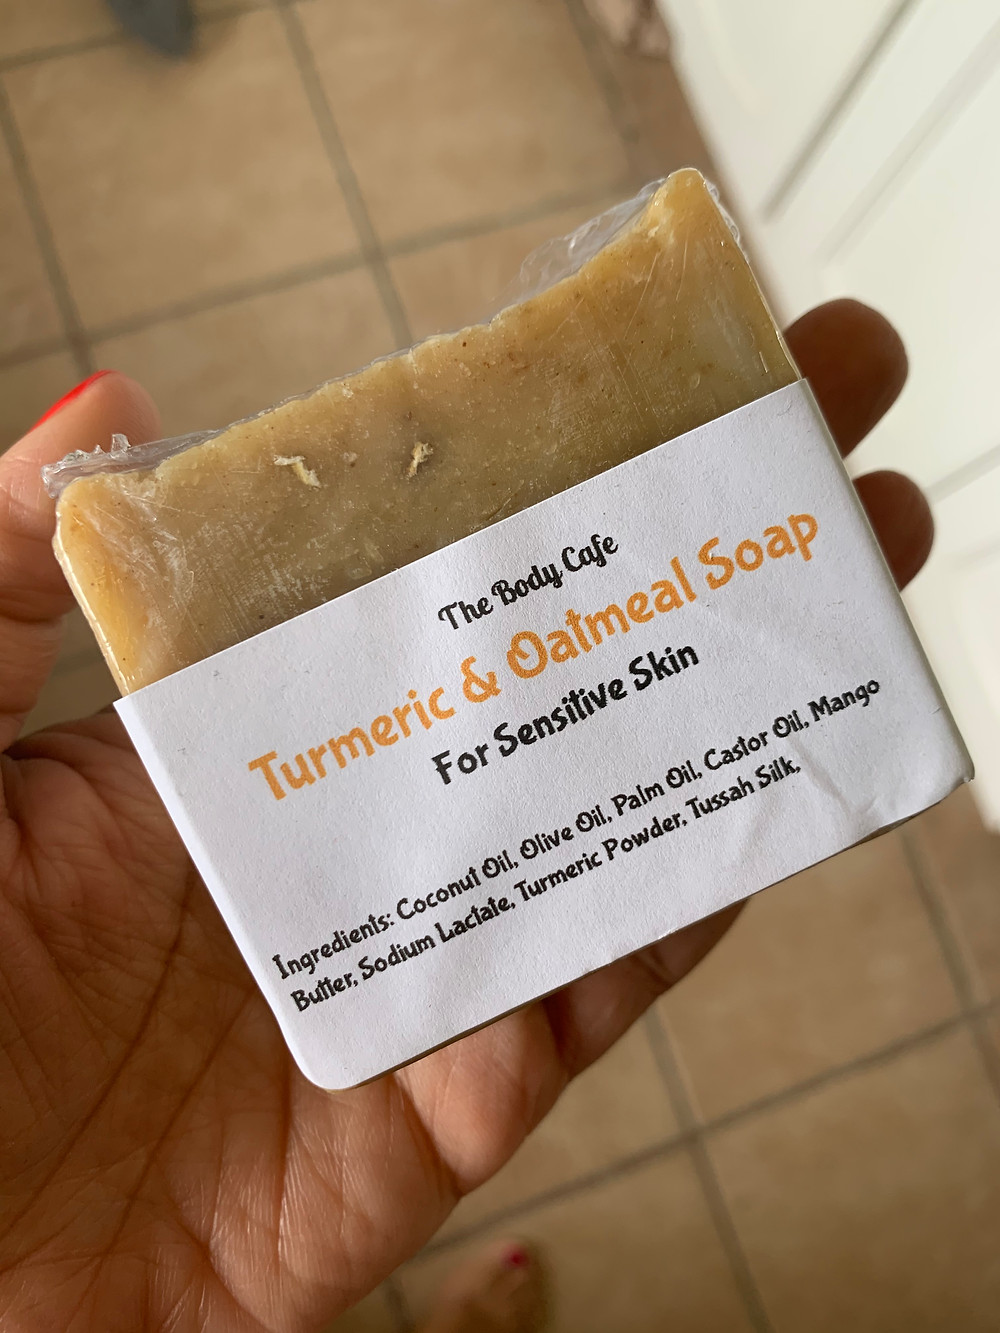 Turmeric and oatmeal soap